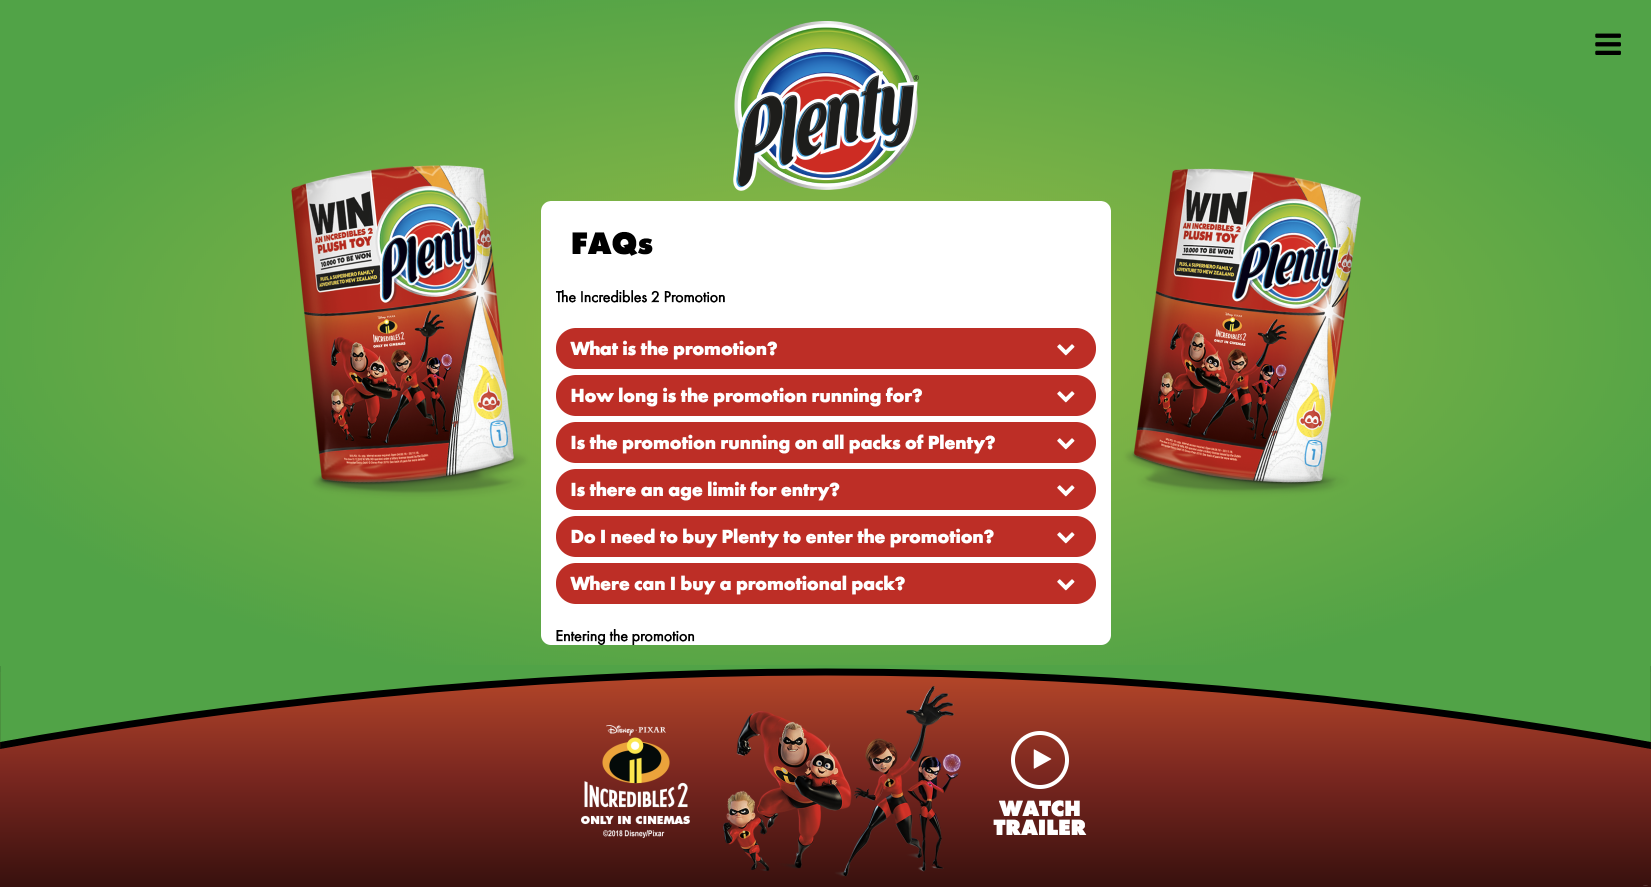 Win with Plenty _ Win Incredibles 2 plush - FAQs.png